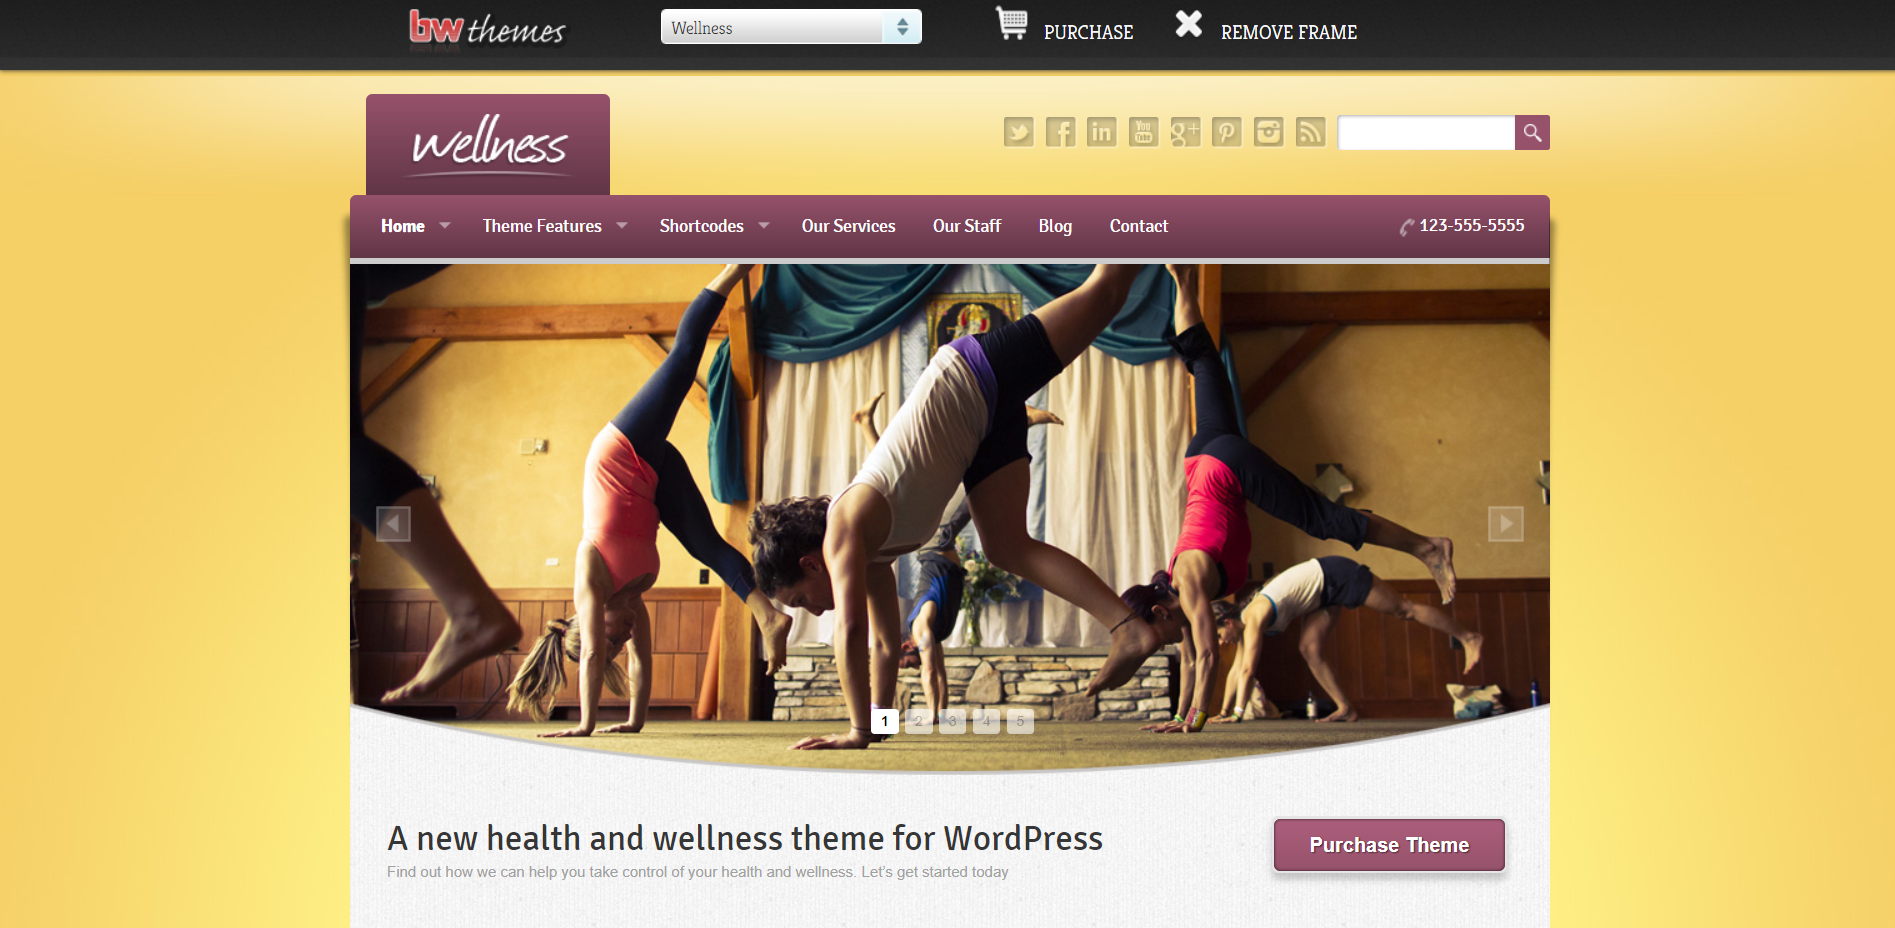 20. Wellness - A Health & Wellness WordPress Theme